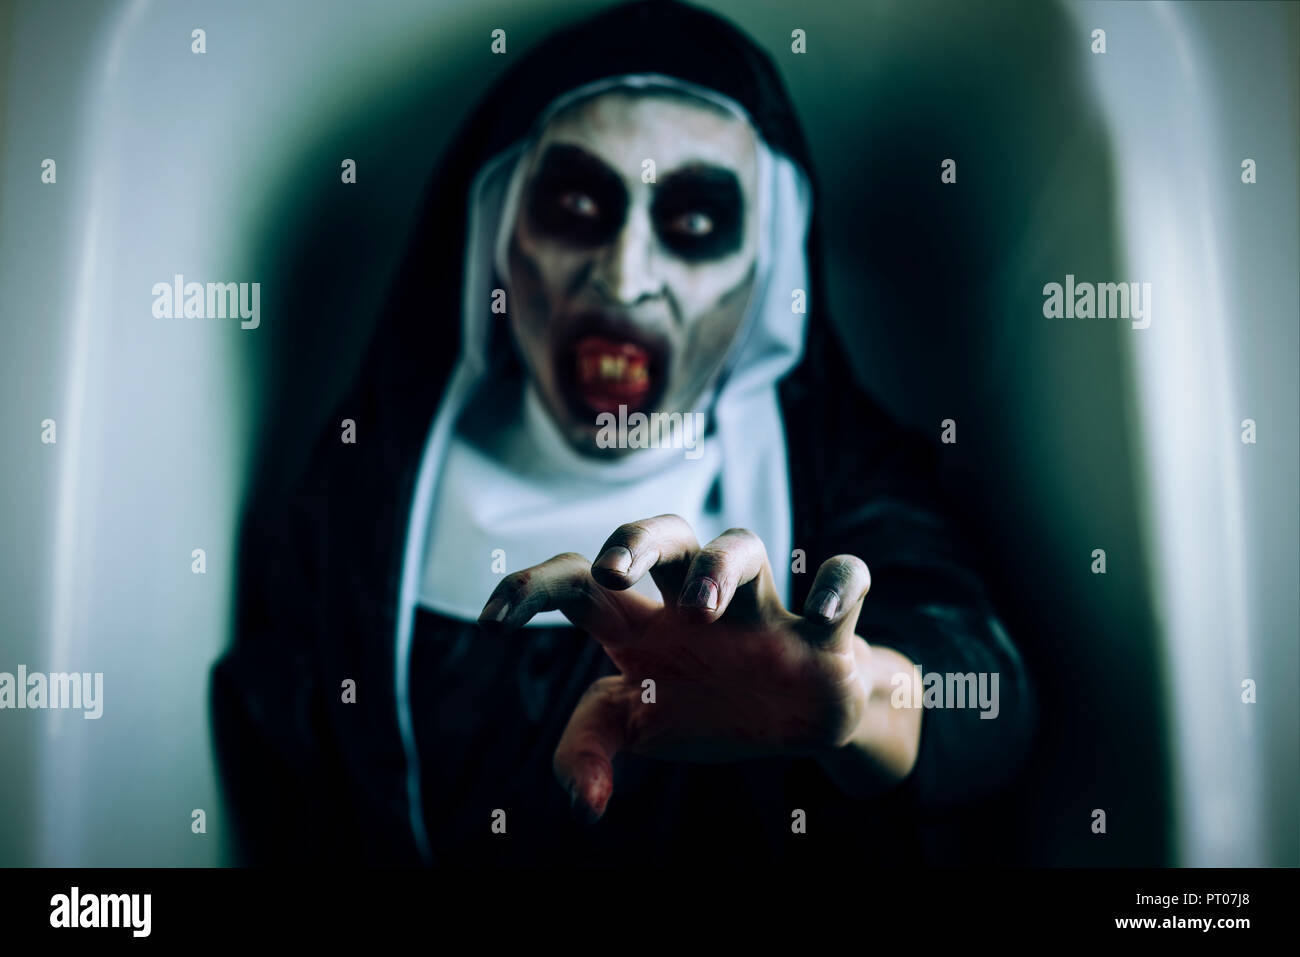 closeup of a frightening evil nun, wearing a typical black and white habit, with a threatening gesture, emerging from a white coffin - Stock Image